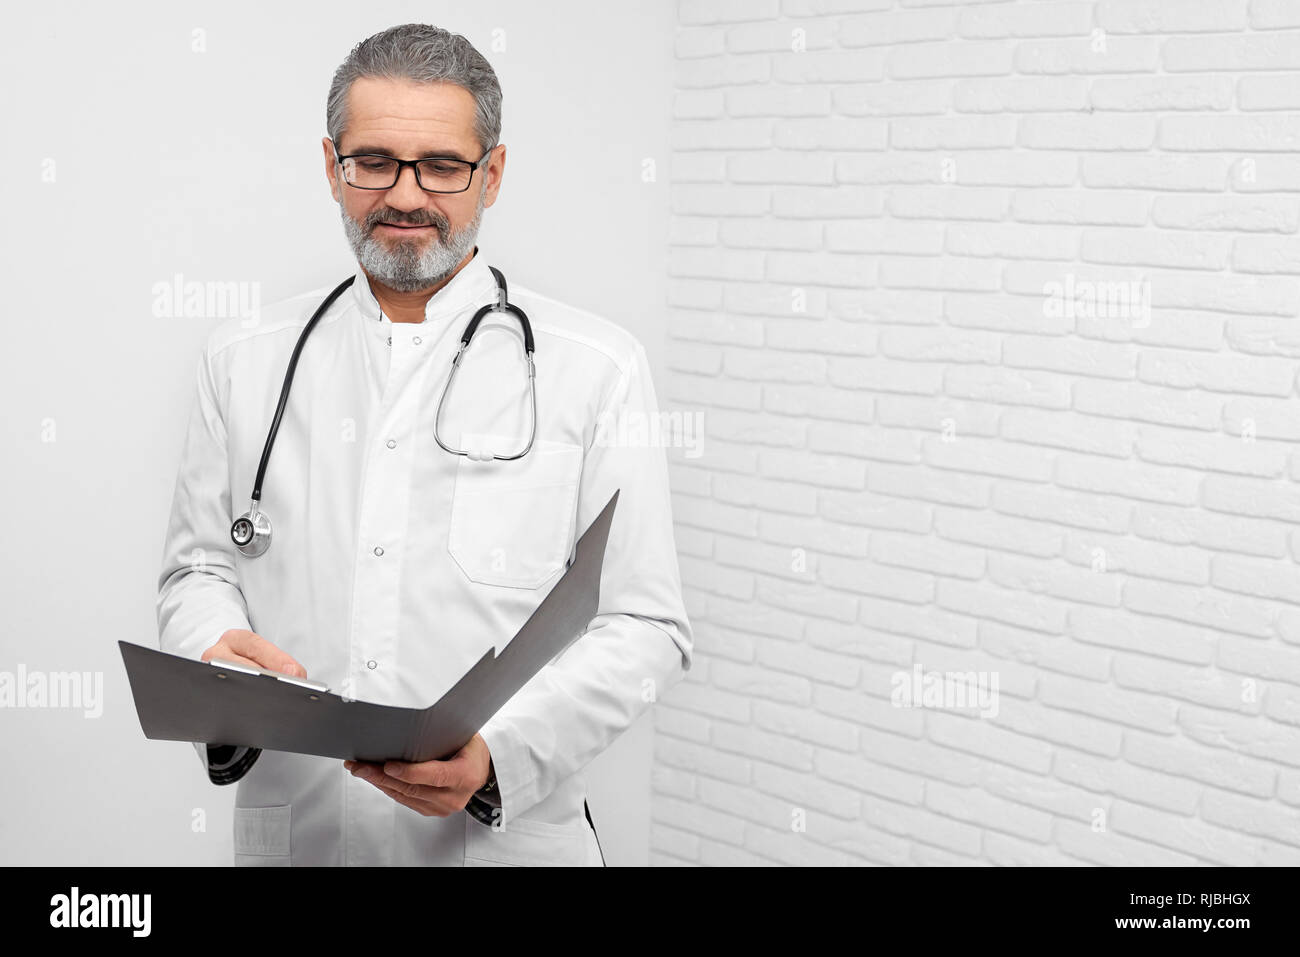 Professional ENT doctor standing in studio with white background. Mature, bearded doctor holding folder, looking down and reading. Physician having stethoscope on neck. - Stock Image